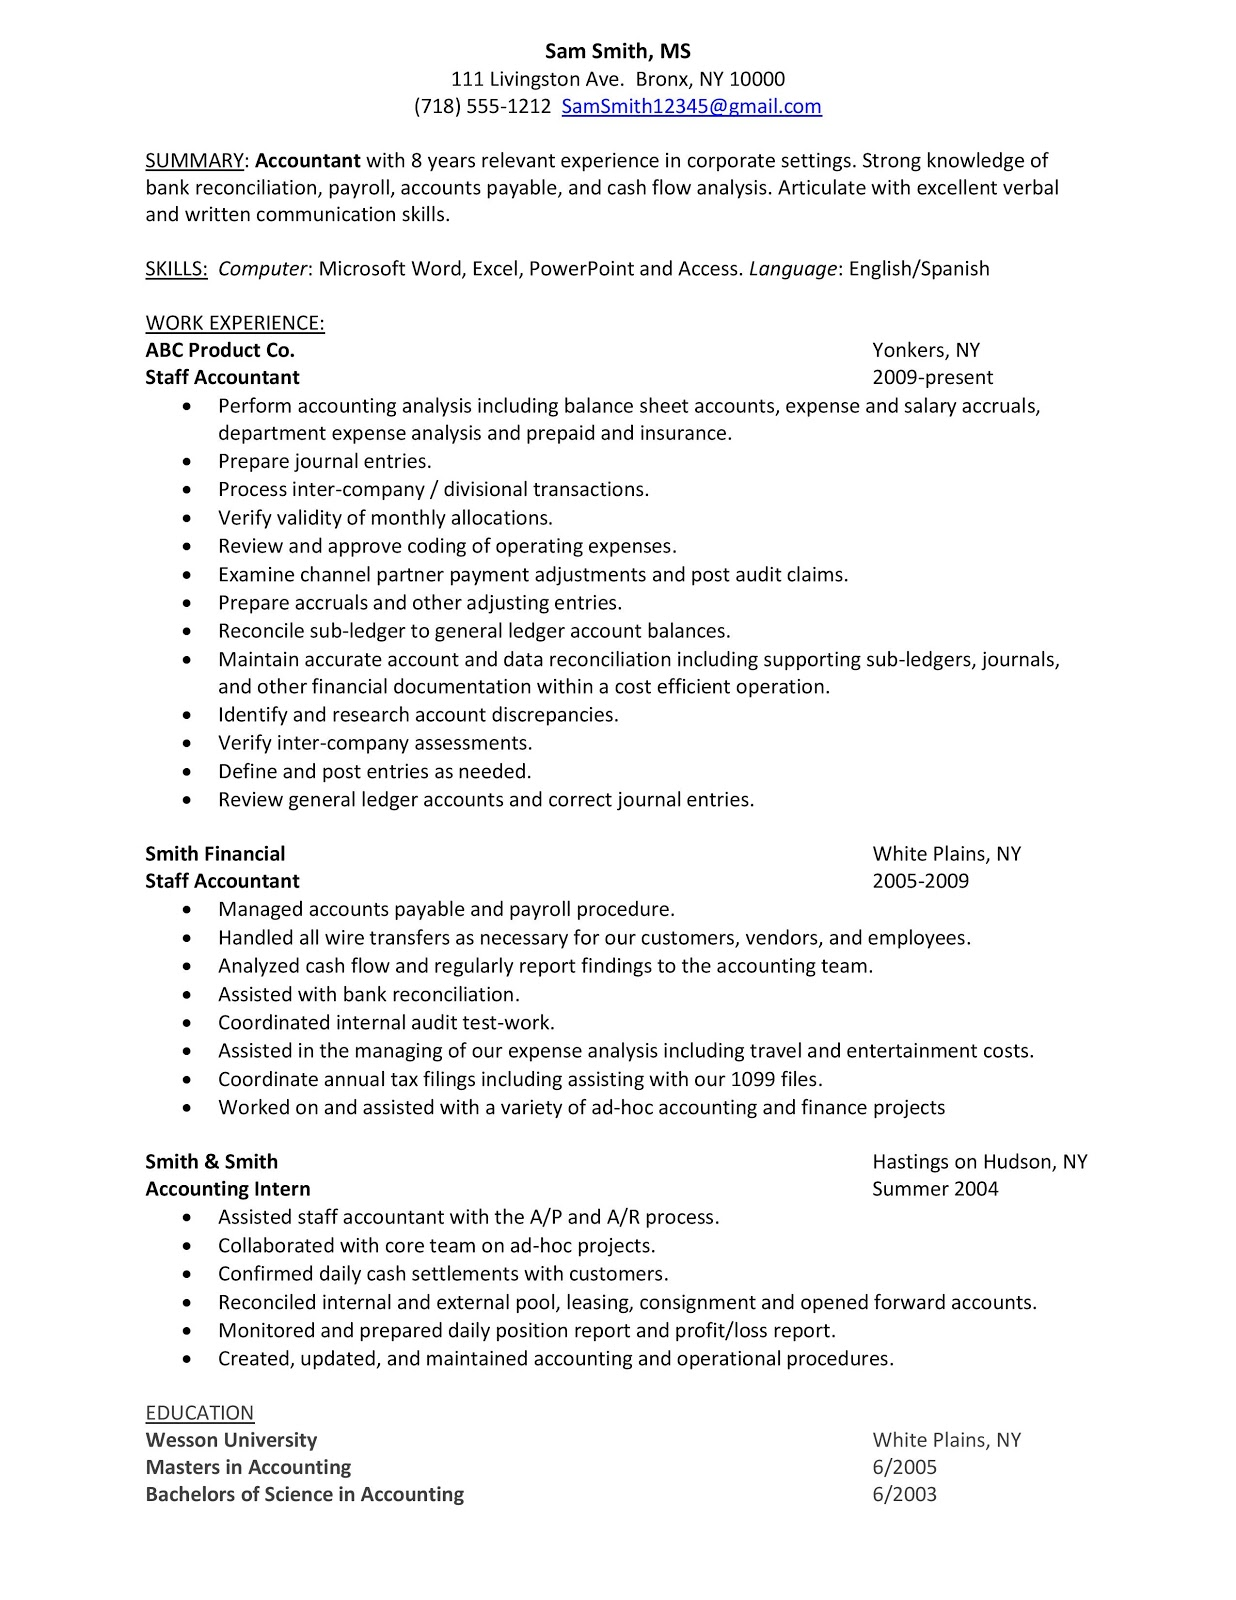 sample resume staff accountant - Banking Accountant Sample Resume